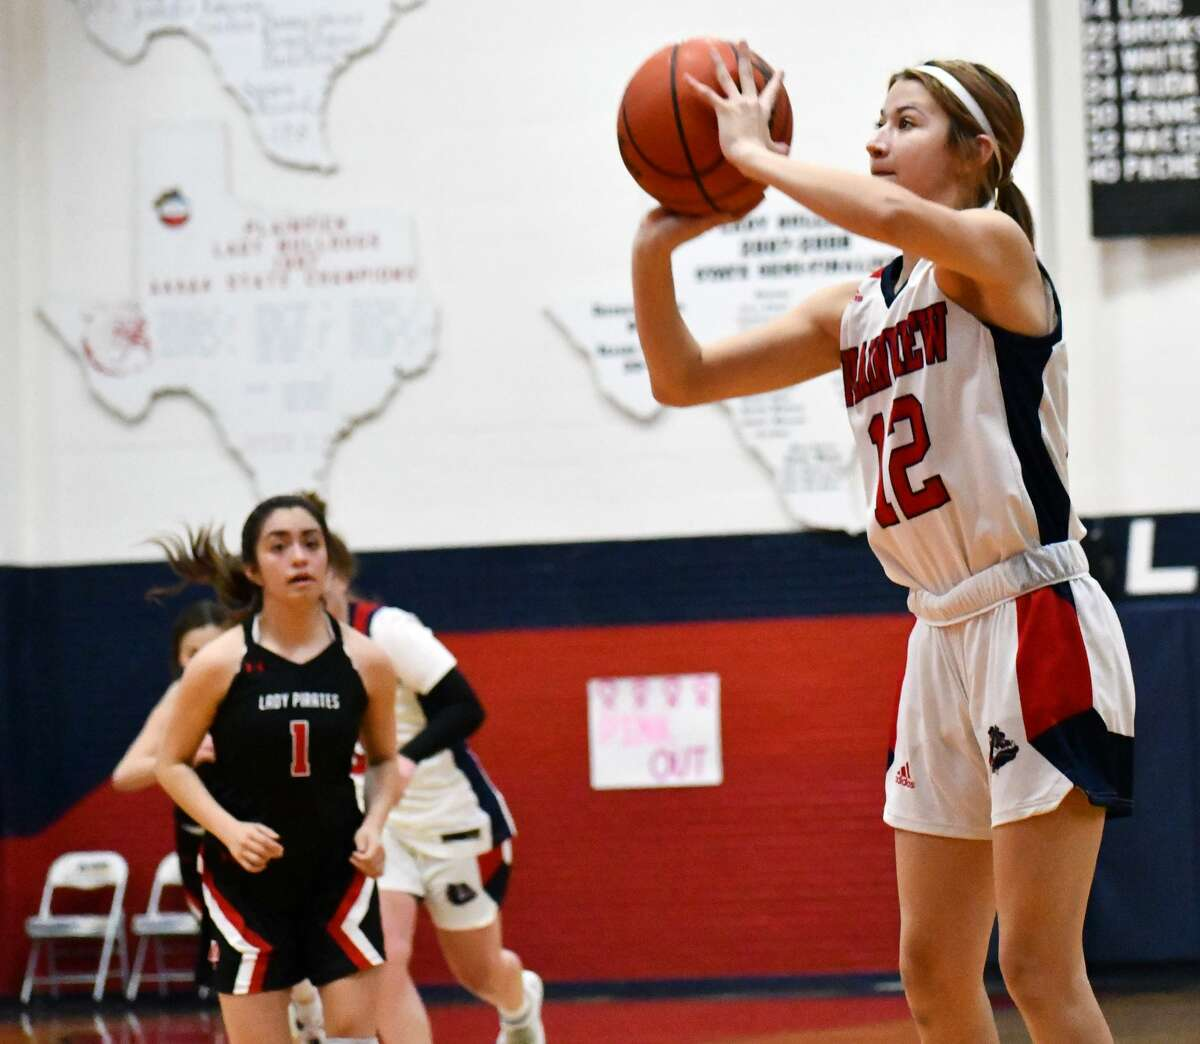 The Plainview boys and girls basketball teams each hosted Lubbock-Cooper in non-district contests on Tuesday, Nov. 17, 2020 in the Dog House at Plainview High School.